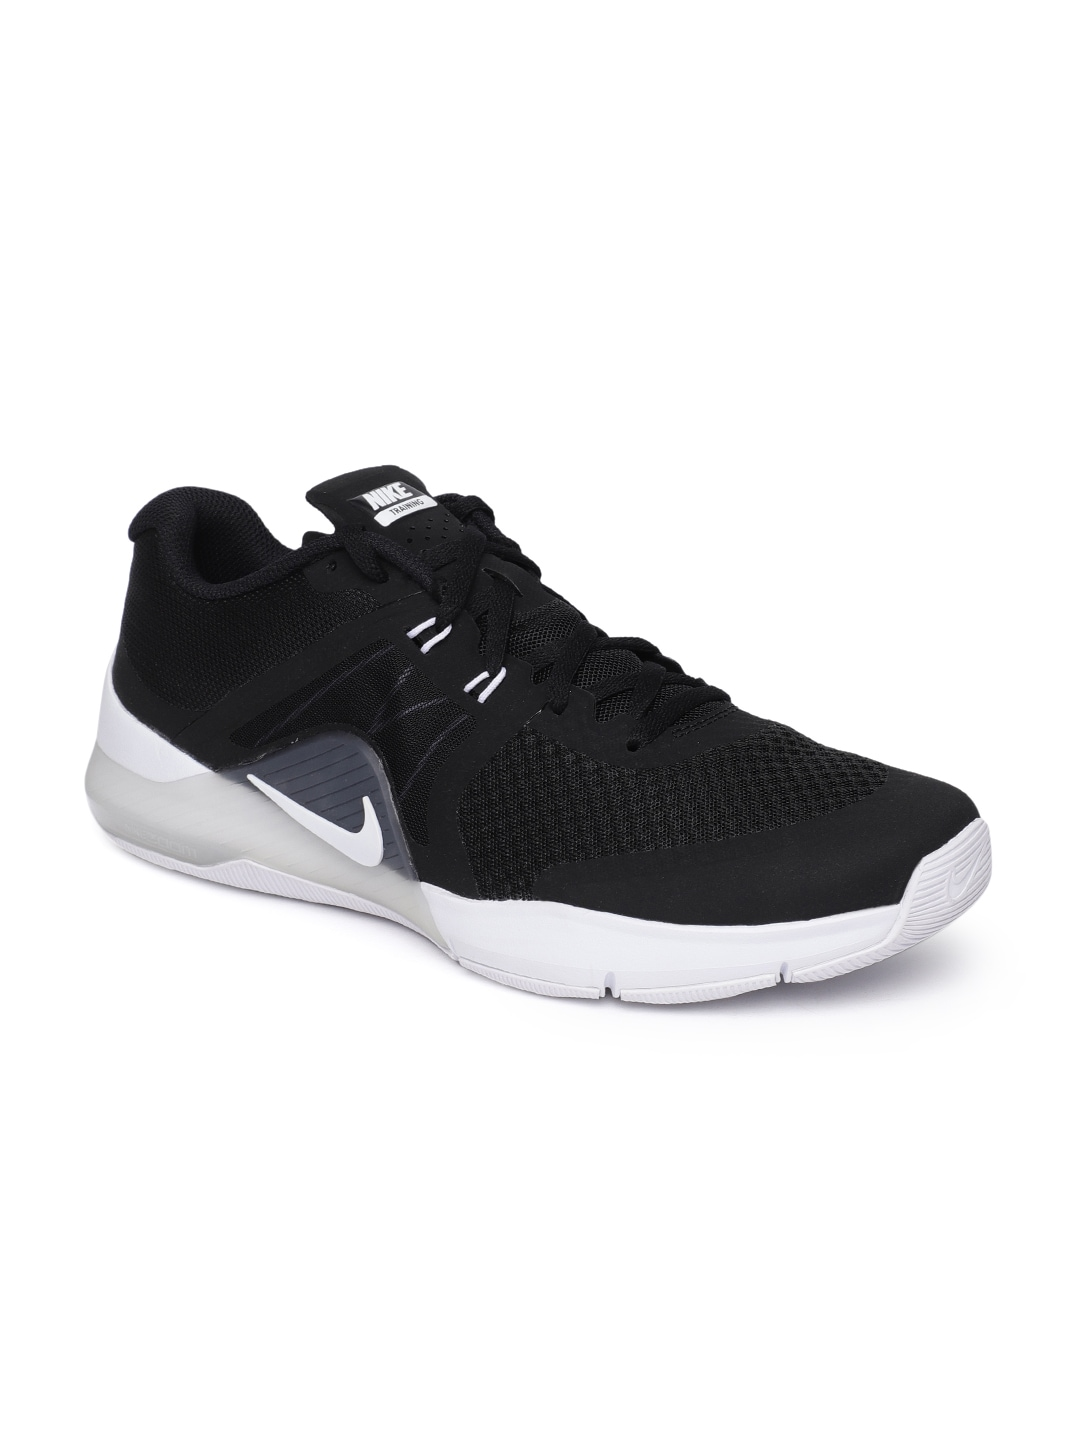 7a3bc20139e1ae Nike Zoom Train Complete Black Training Shoes for Men online in ...